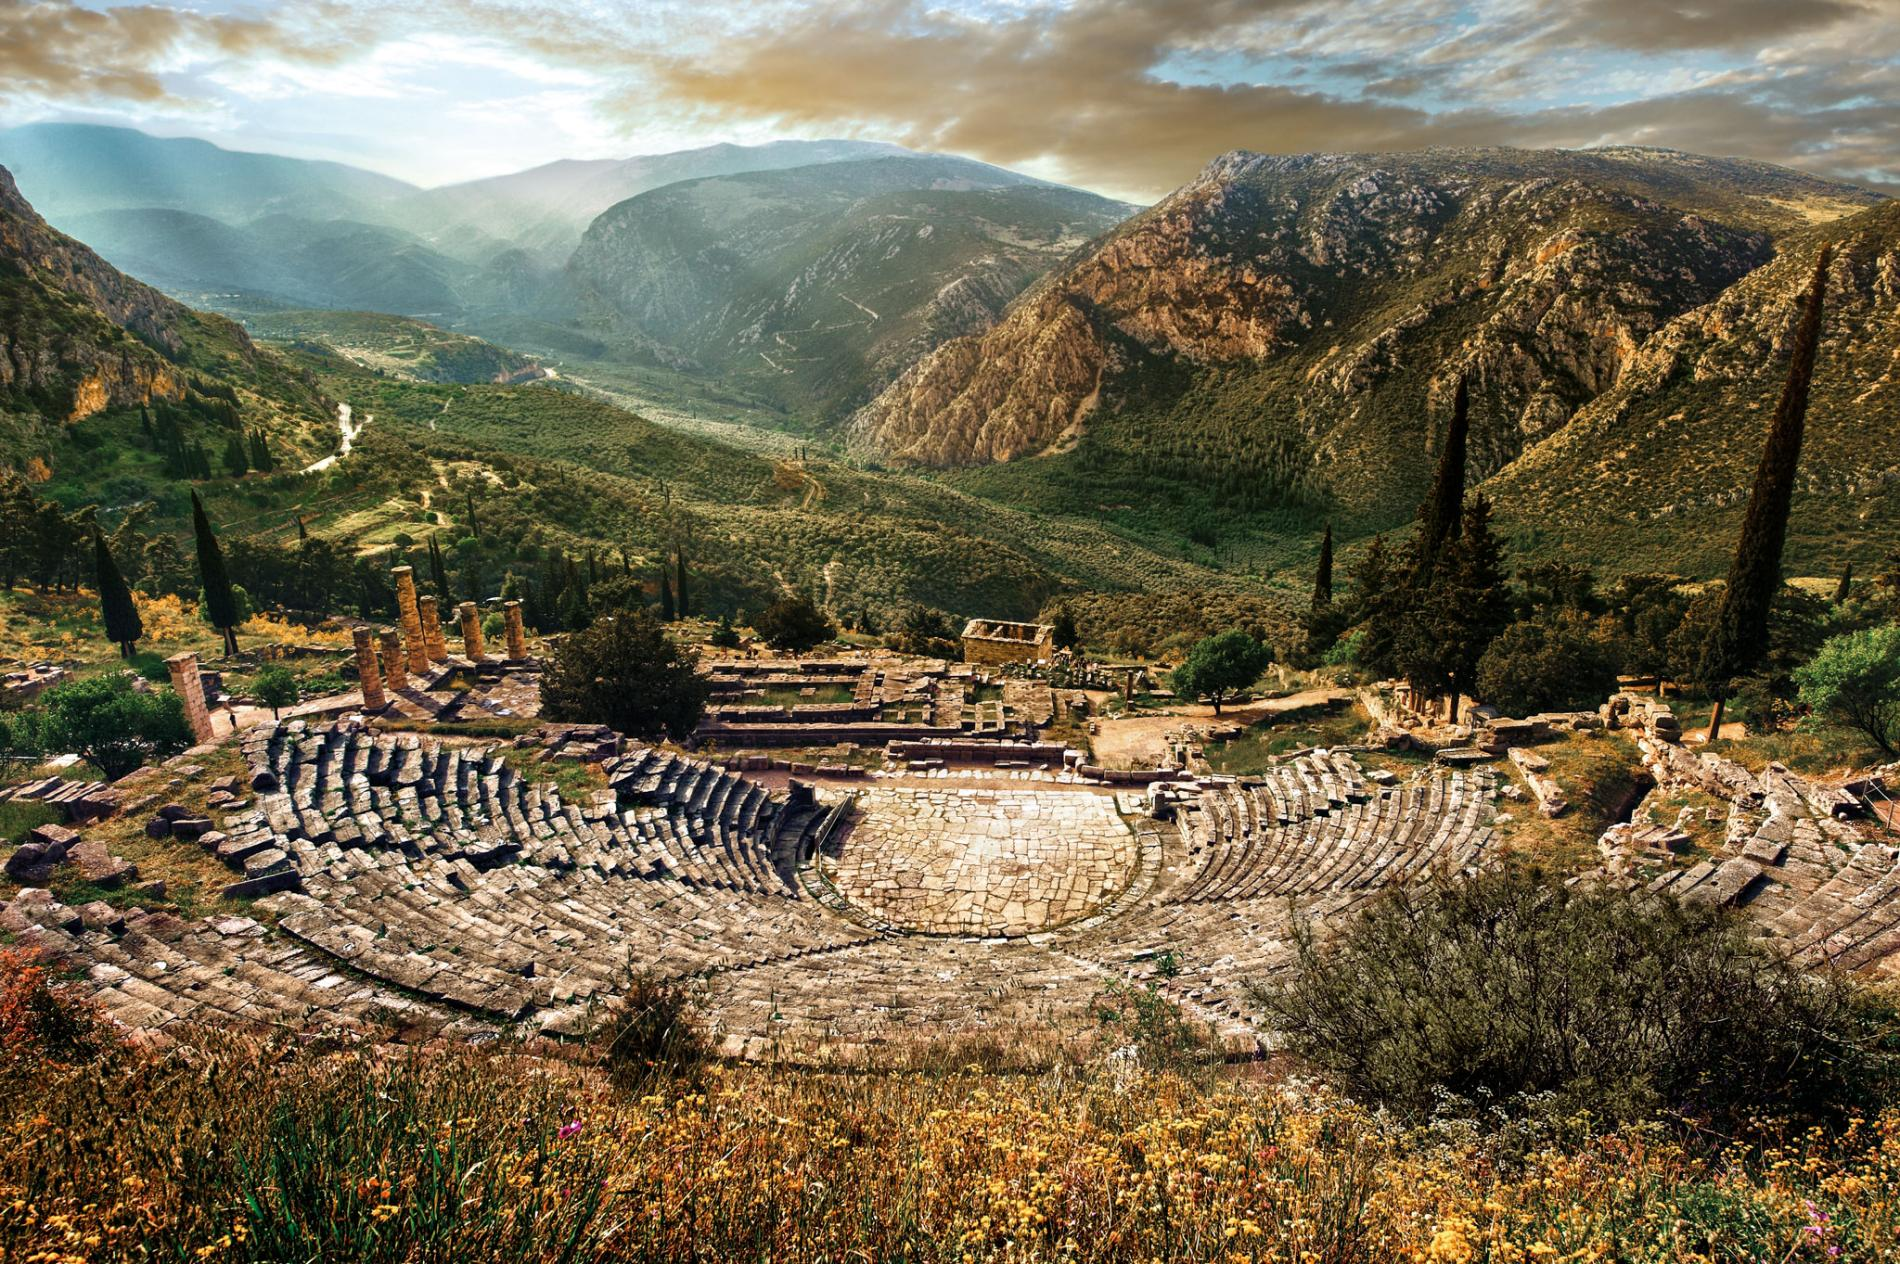 ALL THE WORLD'S A STAGE   Excavated between 1895 and 1897, the amphitheater of Delphi sits up the hill from the Temple of Apollo. A massive space, it was able to seat an audience of up to 5,000 people. Musical, poetic, and dramatic performances were staged here.   PHOTOGRAPH FUNKYSTOCK/AGE FOTOSTOCK